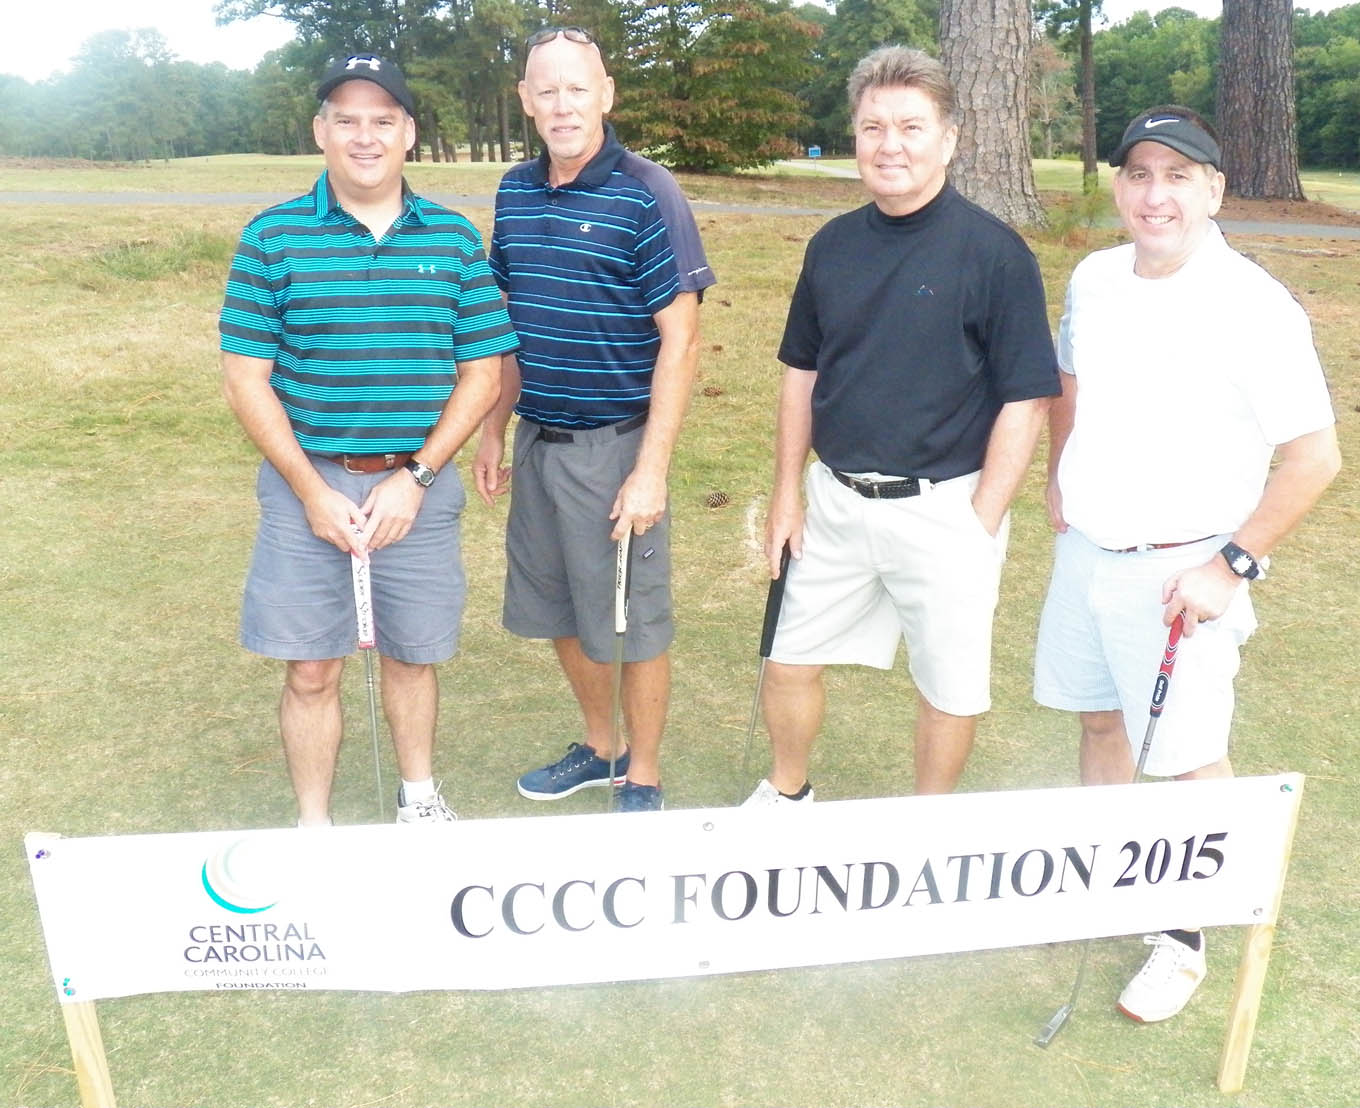 Click to enlarge,  The team of Richard Galloway, Dal Langston, Morris McClelion, and Brian Davis tied for first in the second flight of the morning tournament of the CCCC Foundation Lee Golf Classic.